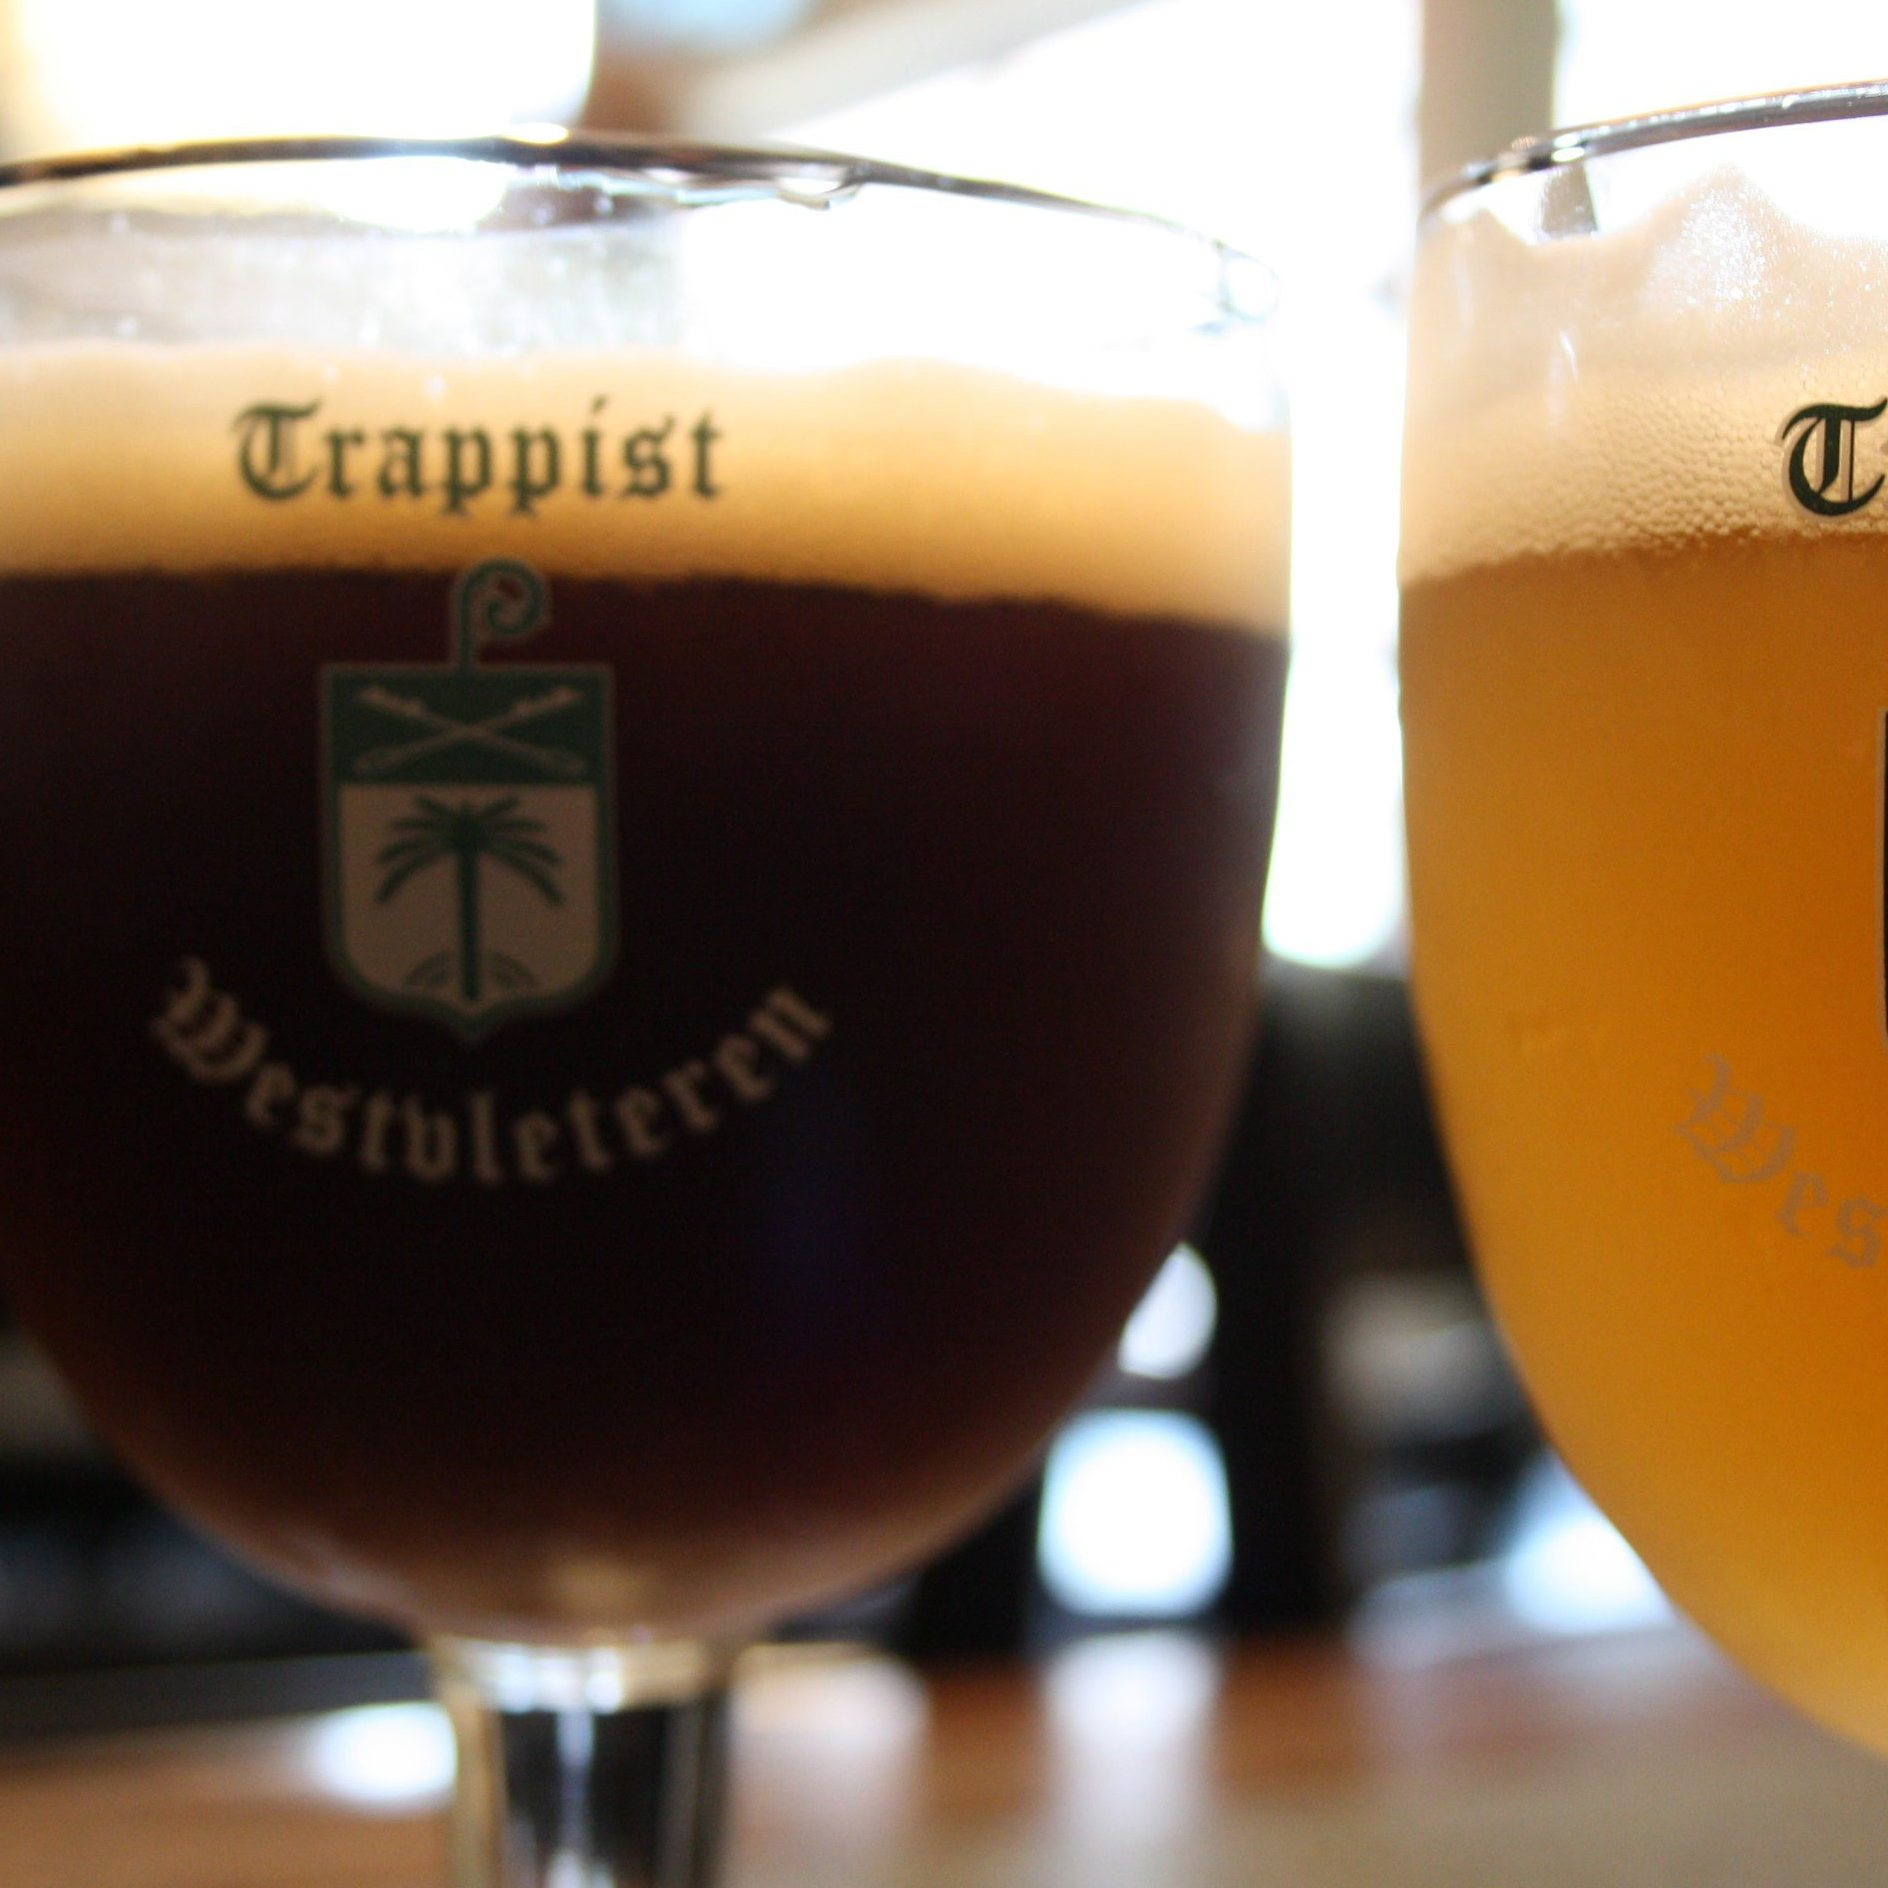 Beers made by Trappist monks at St. Sixtus Abbey's Westvleteren Brewery in Belgium are sought by connoisseurs. For the first time, the monks are exporting the brew overseas.